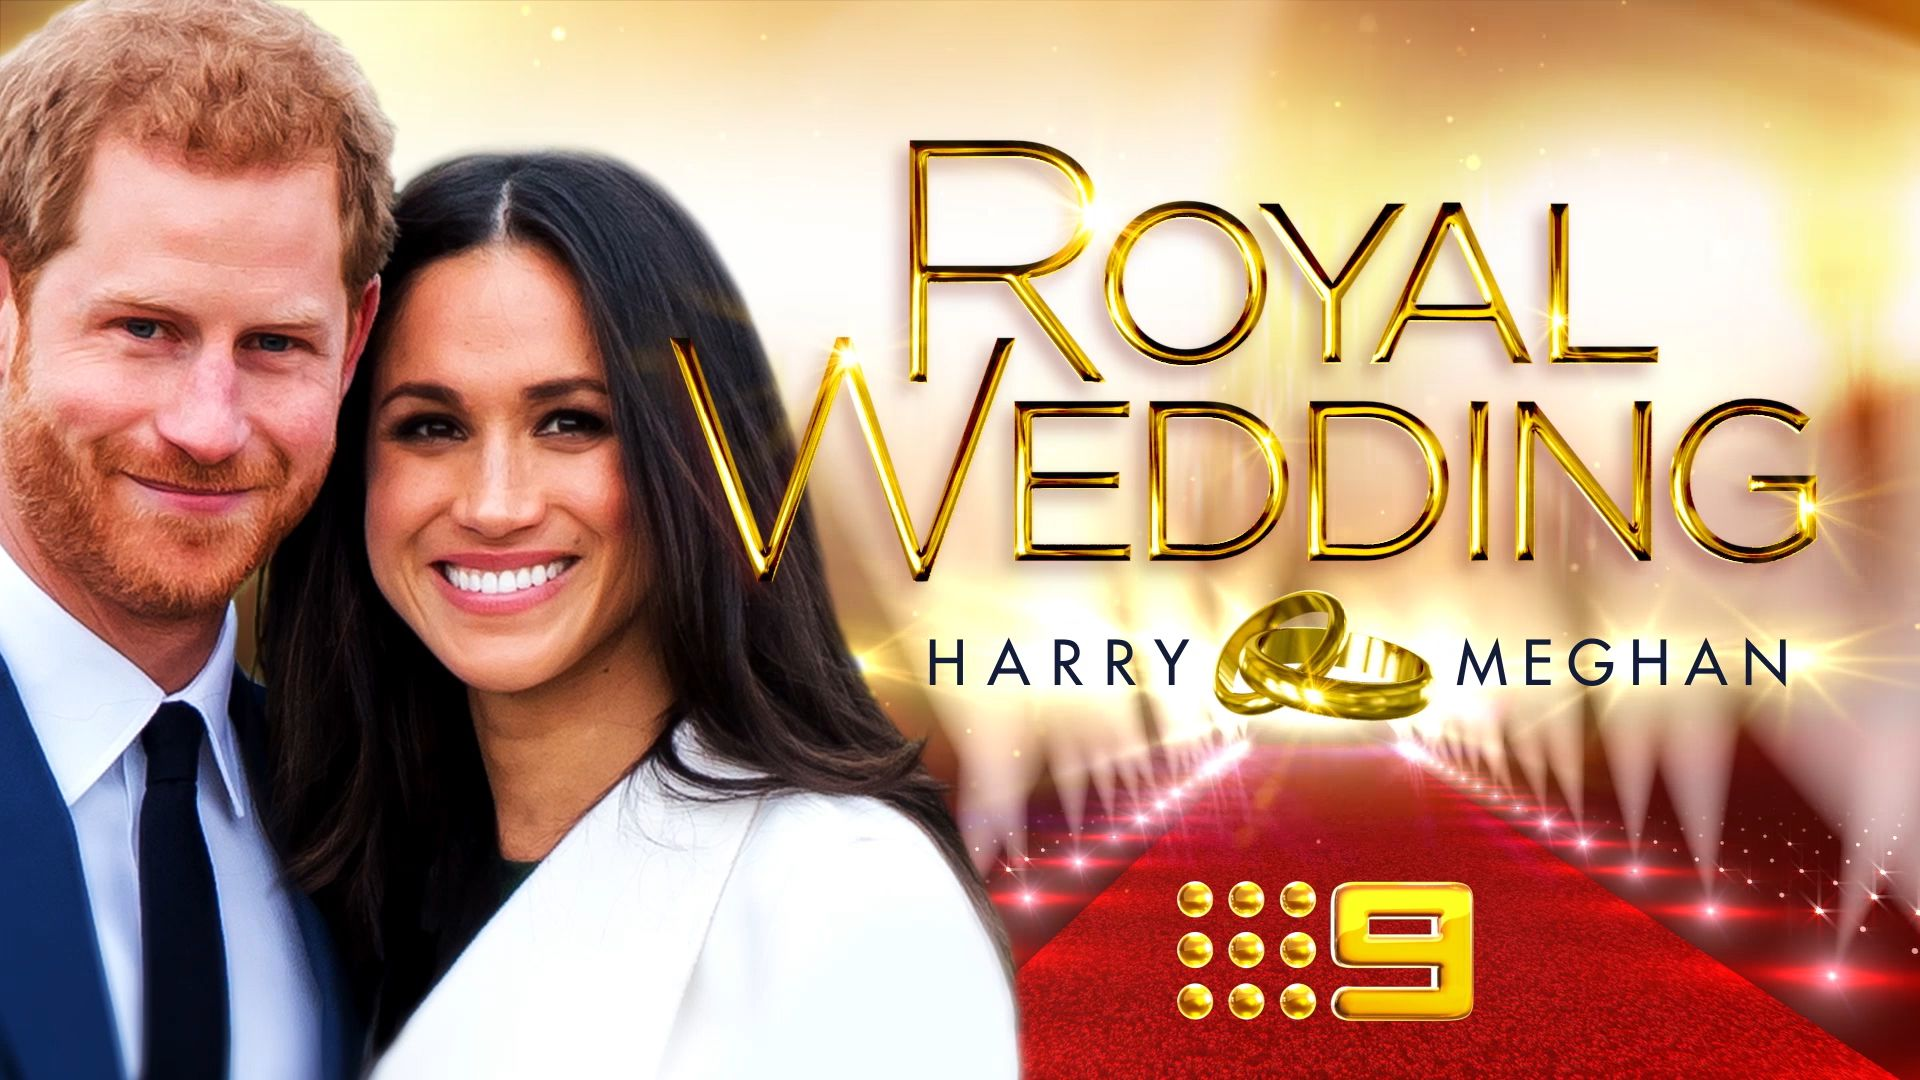 ​Royal wedding - Harry & Meghan on Nine Entertainment